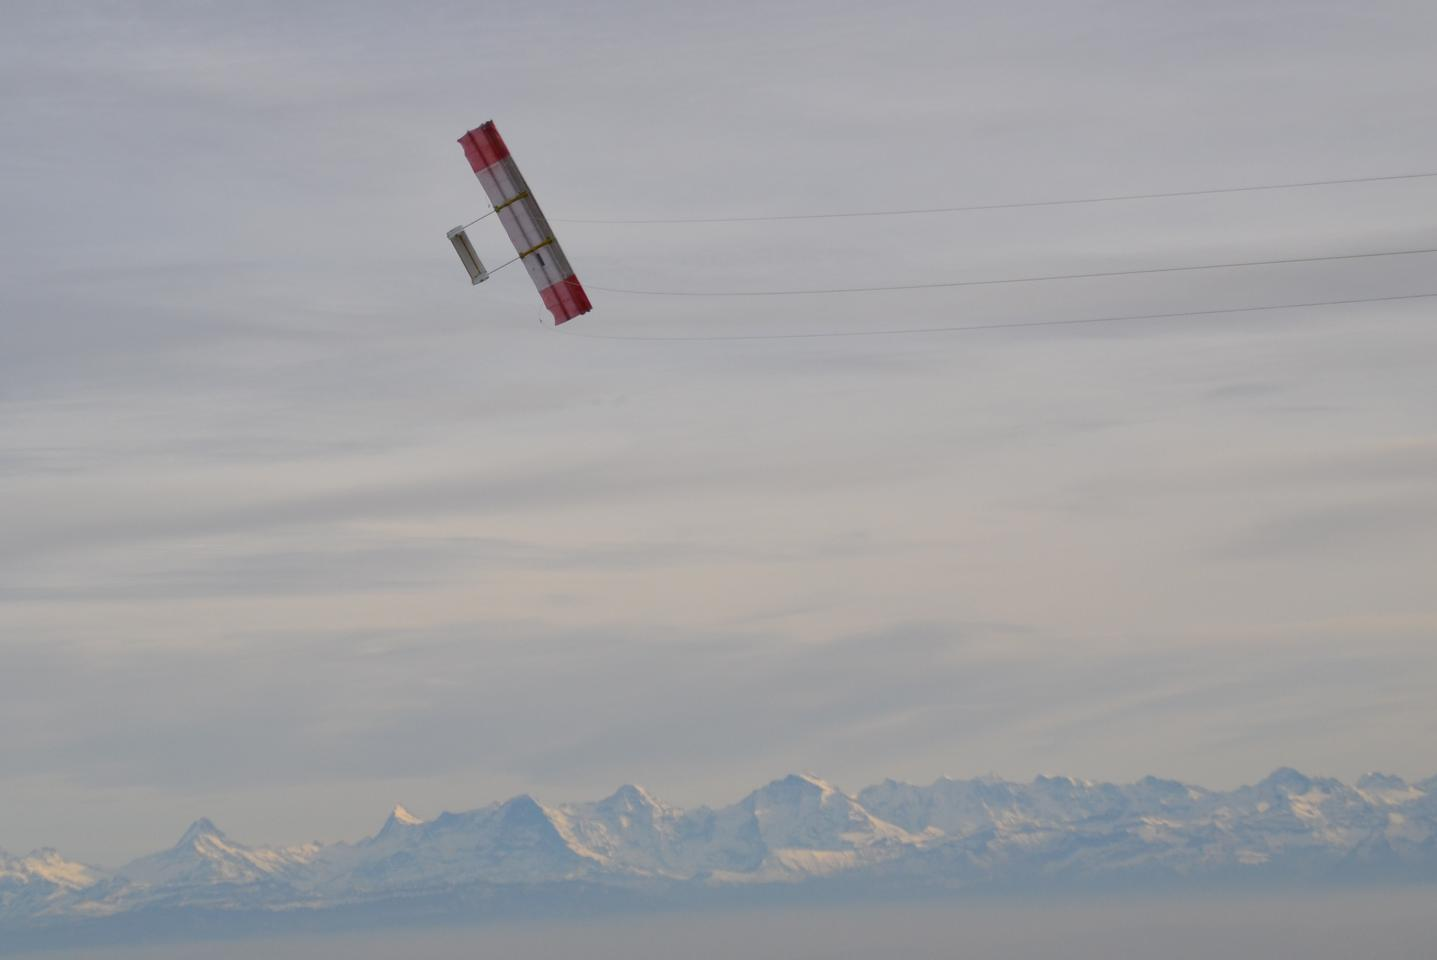 TwingTec's prototype Twing above the Swiss Alps